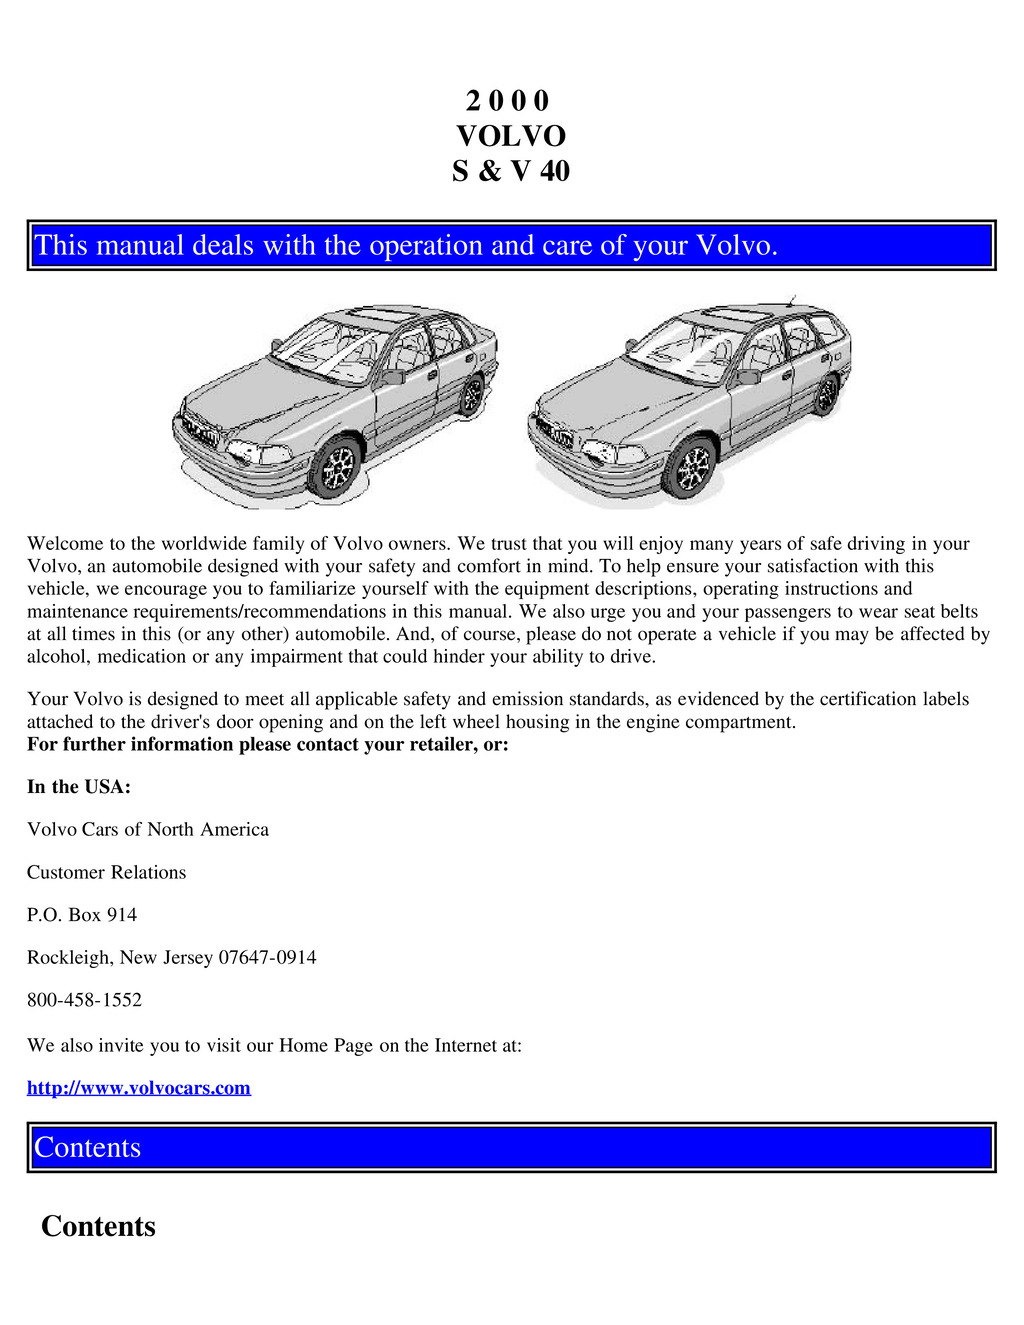 2000 Volvo S40 V40 owners manual